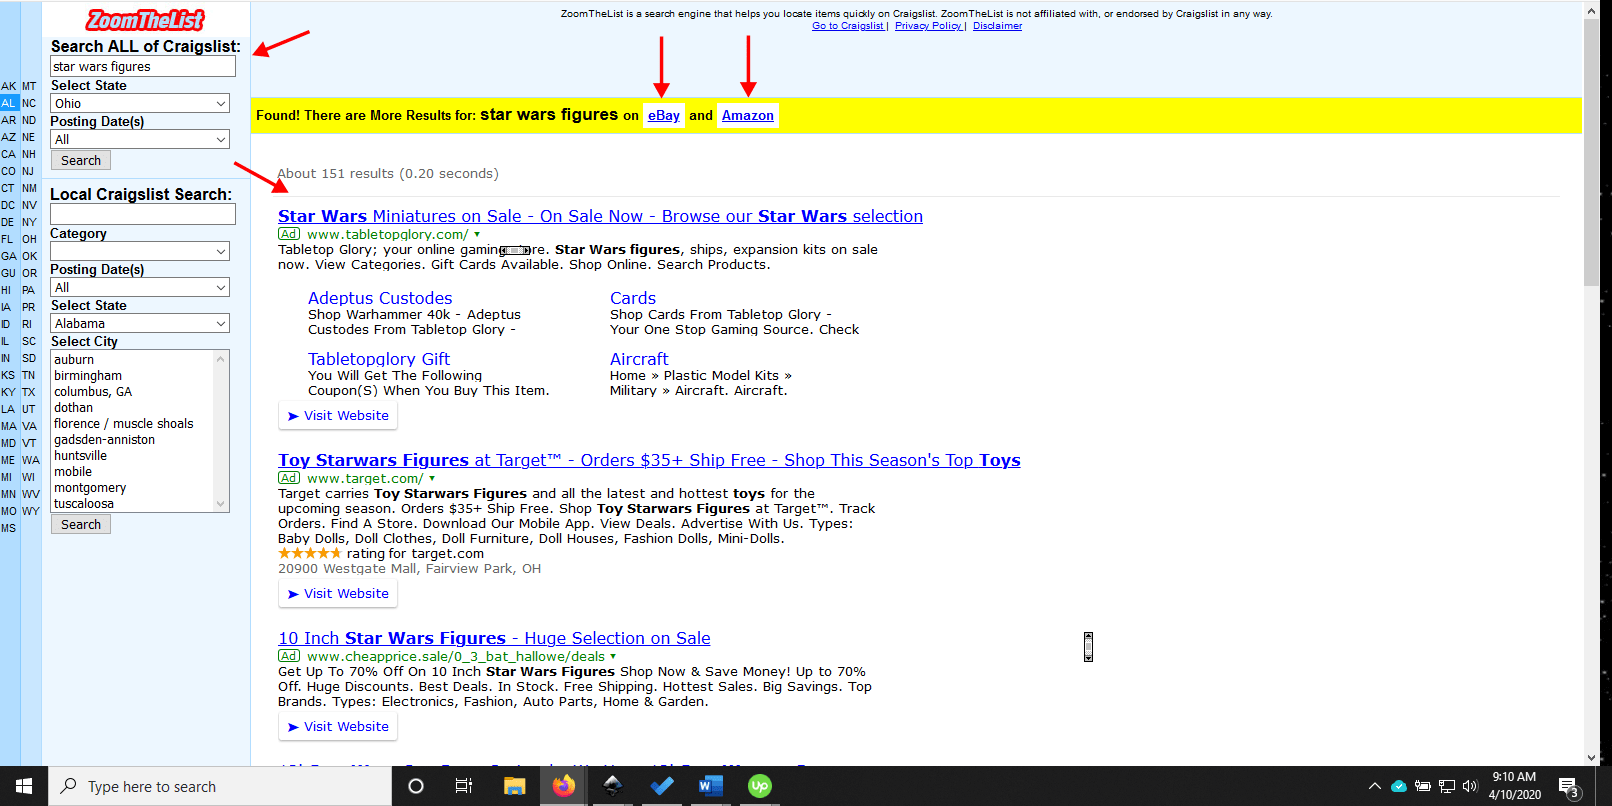 How to Search All of Craigslist at Once [November 2020]